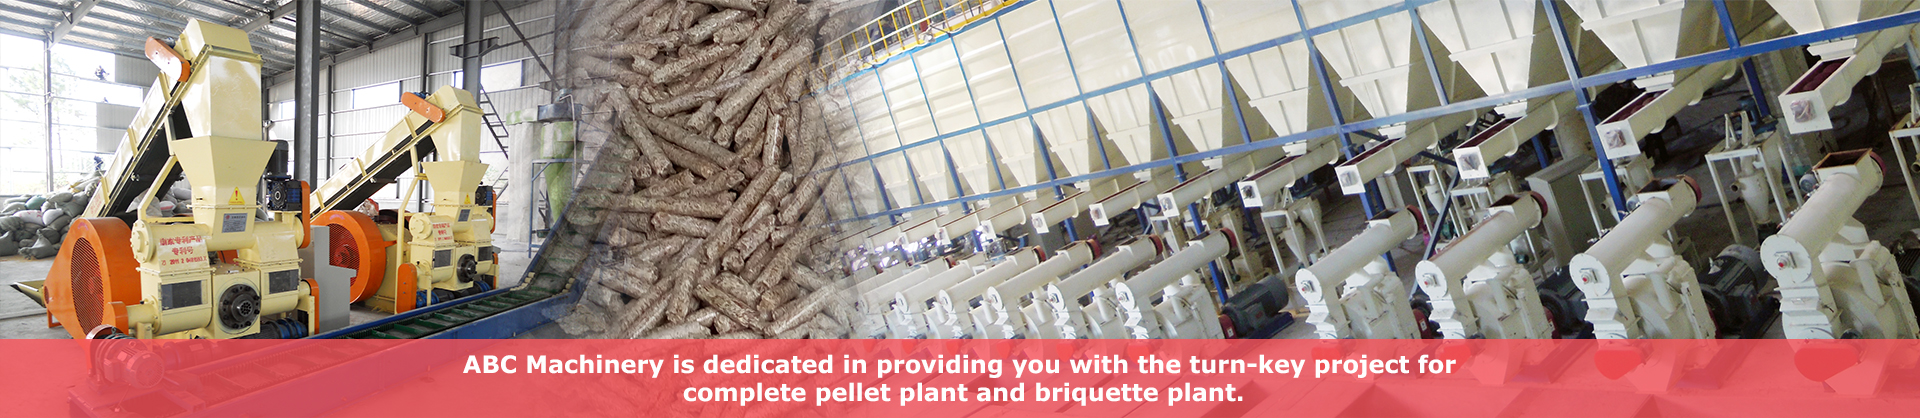 turnkey pellet plant and briquetting plant